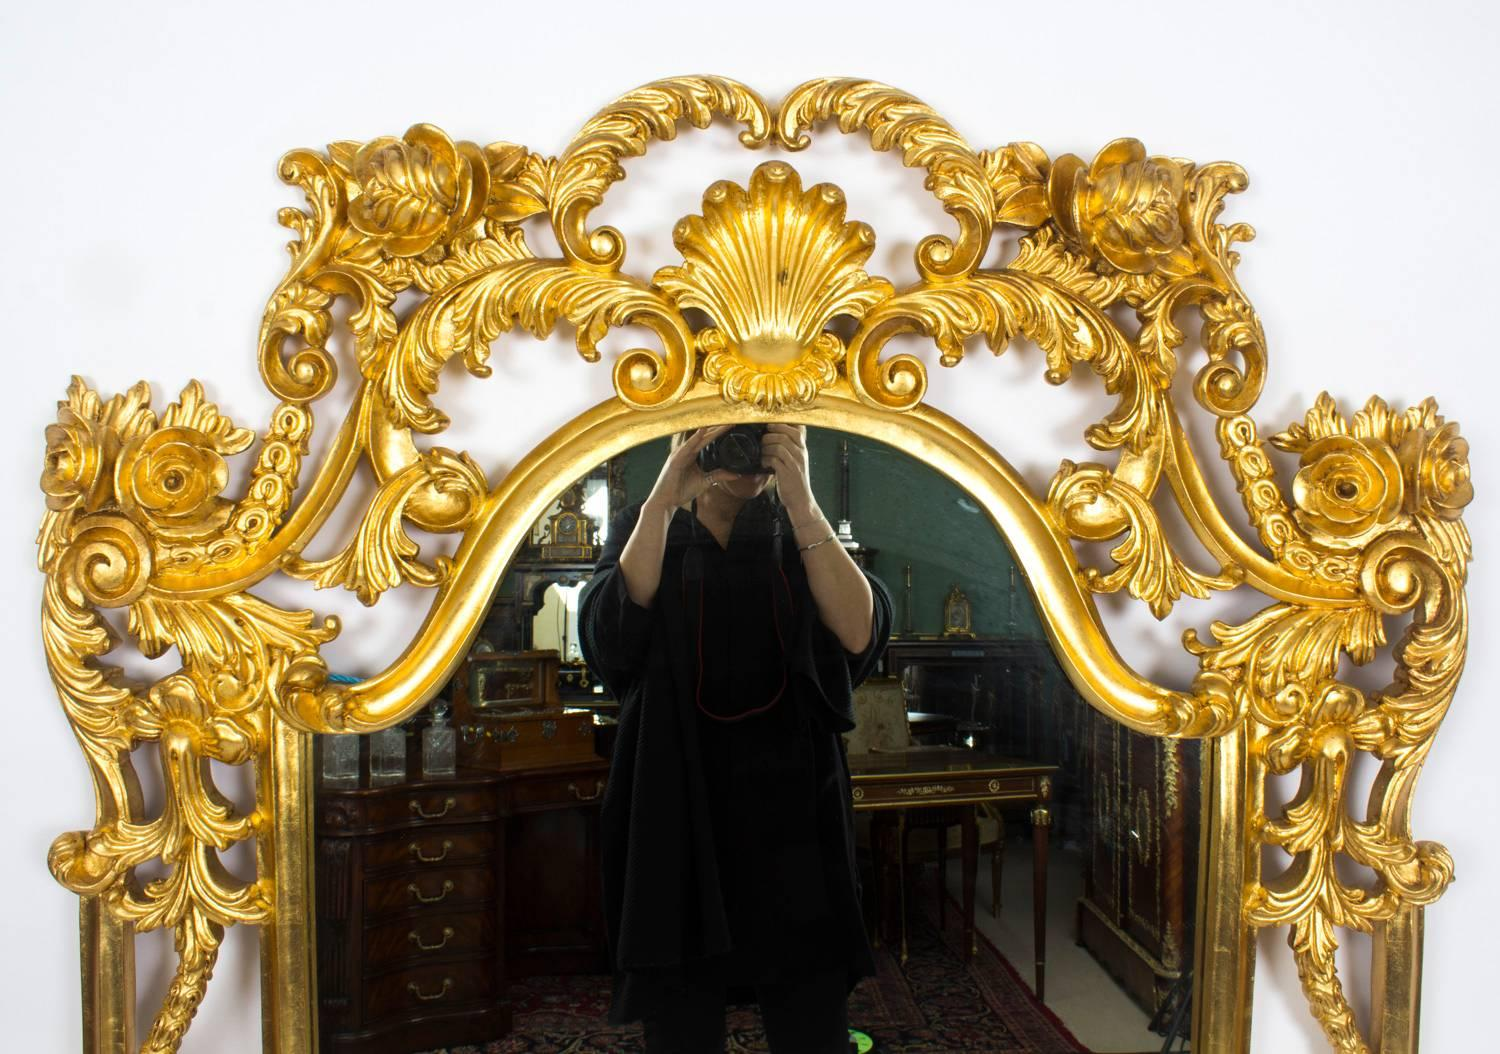 Beautiful Ornate Large Italian Gilded Decorative Mirror For Sale at ...